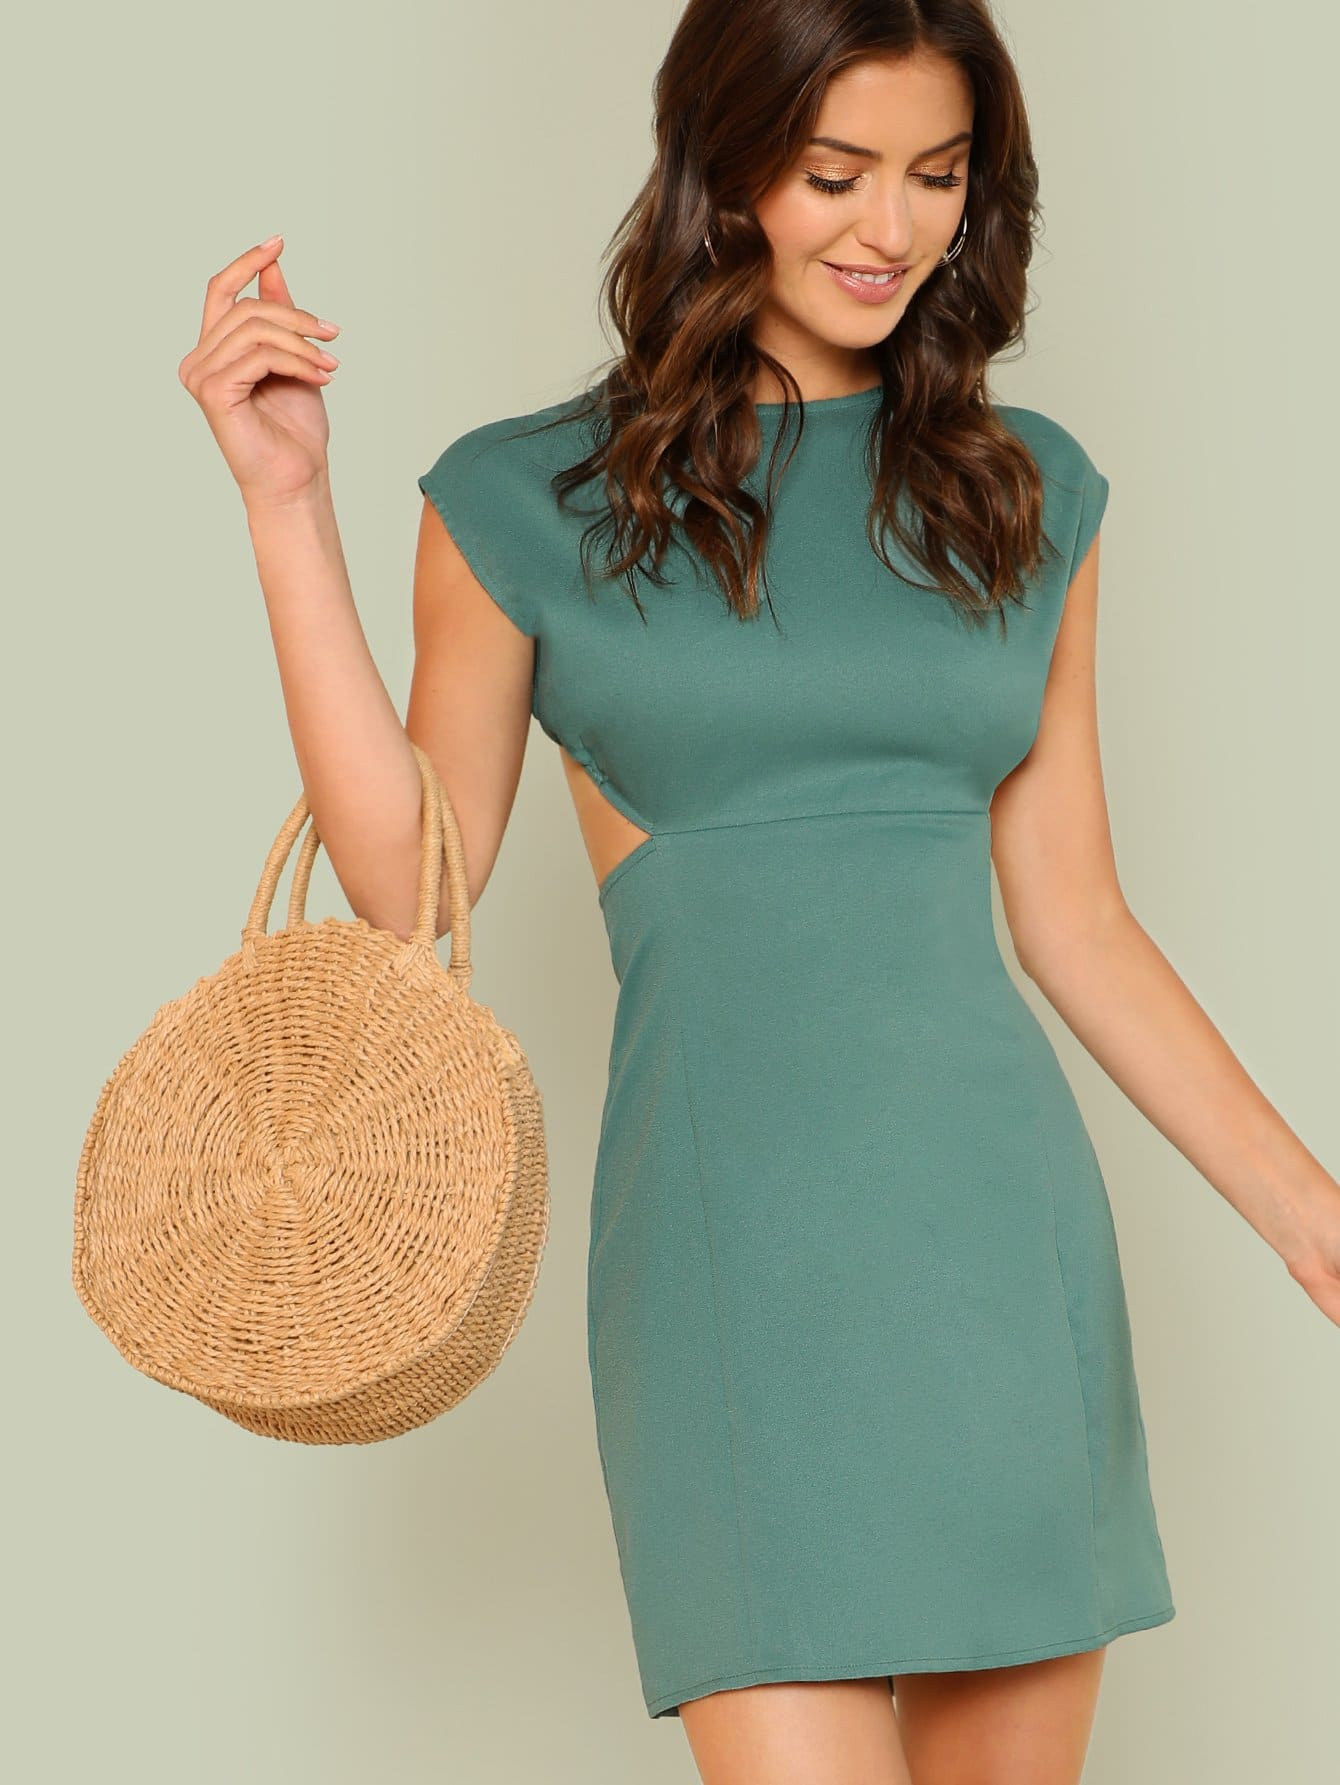 Cut Out Backless Solid Dress cut out front split backless dress